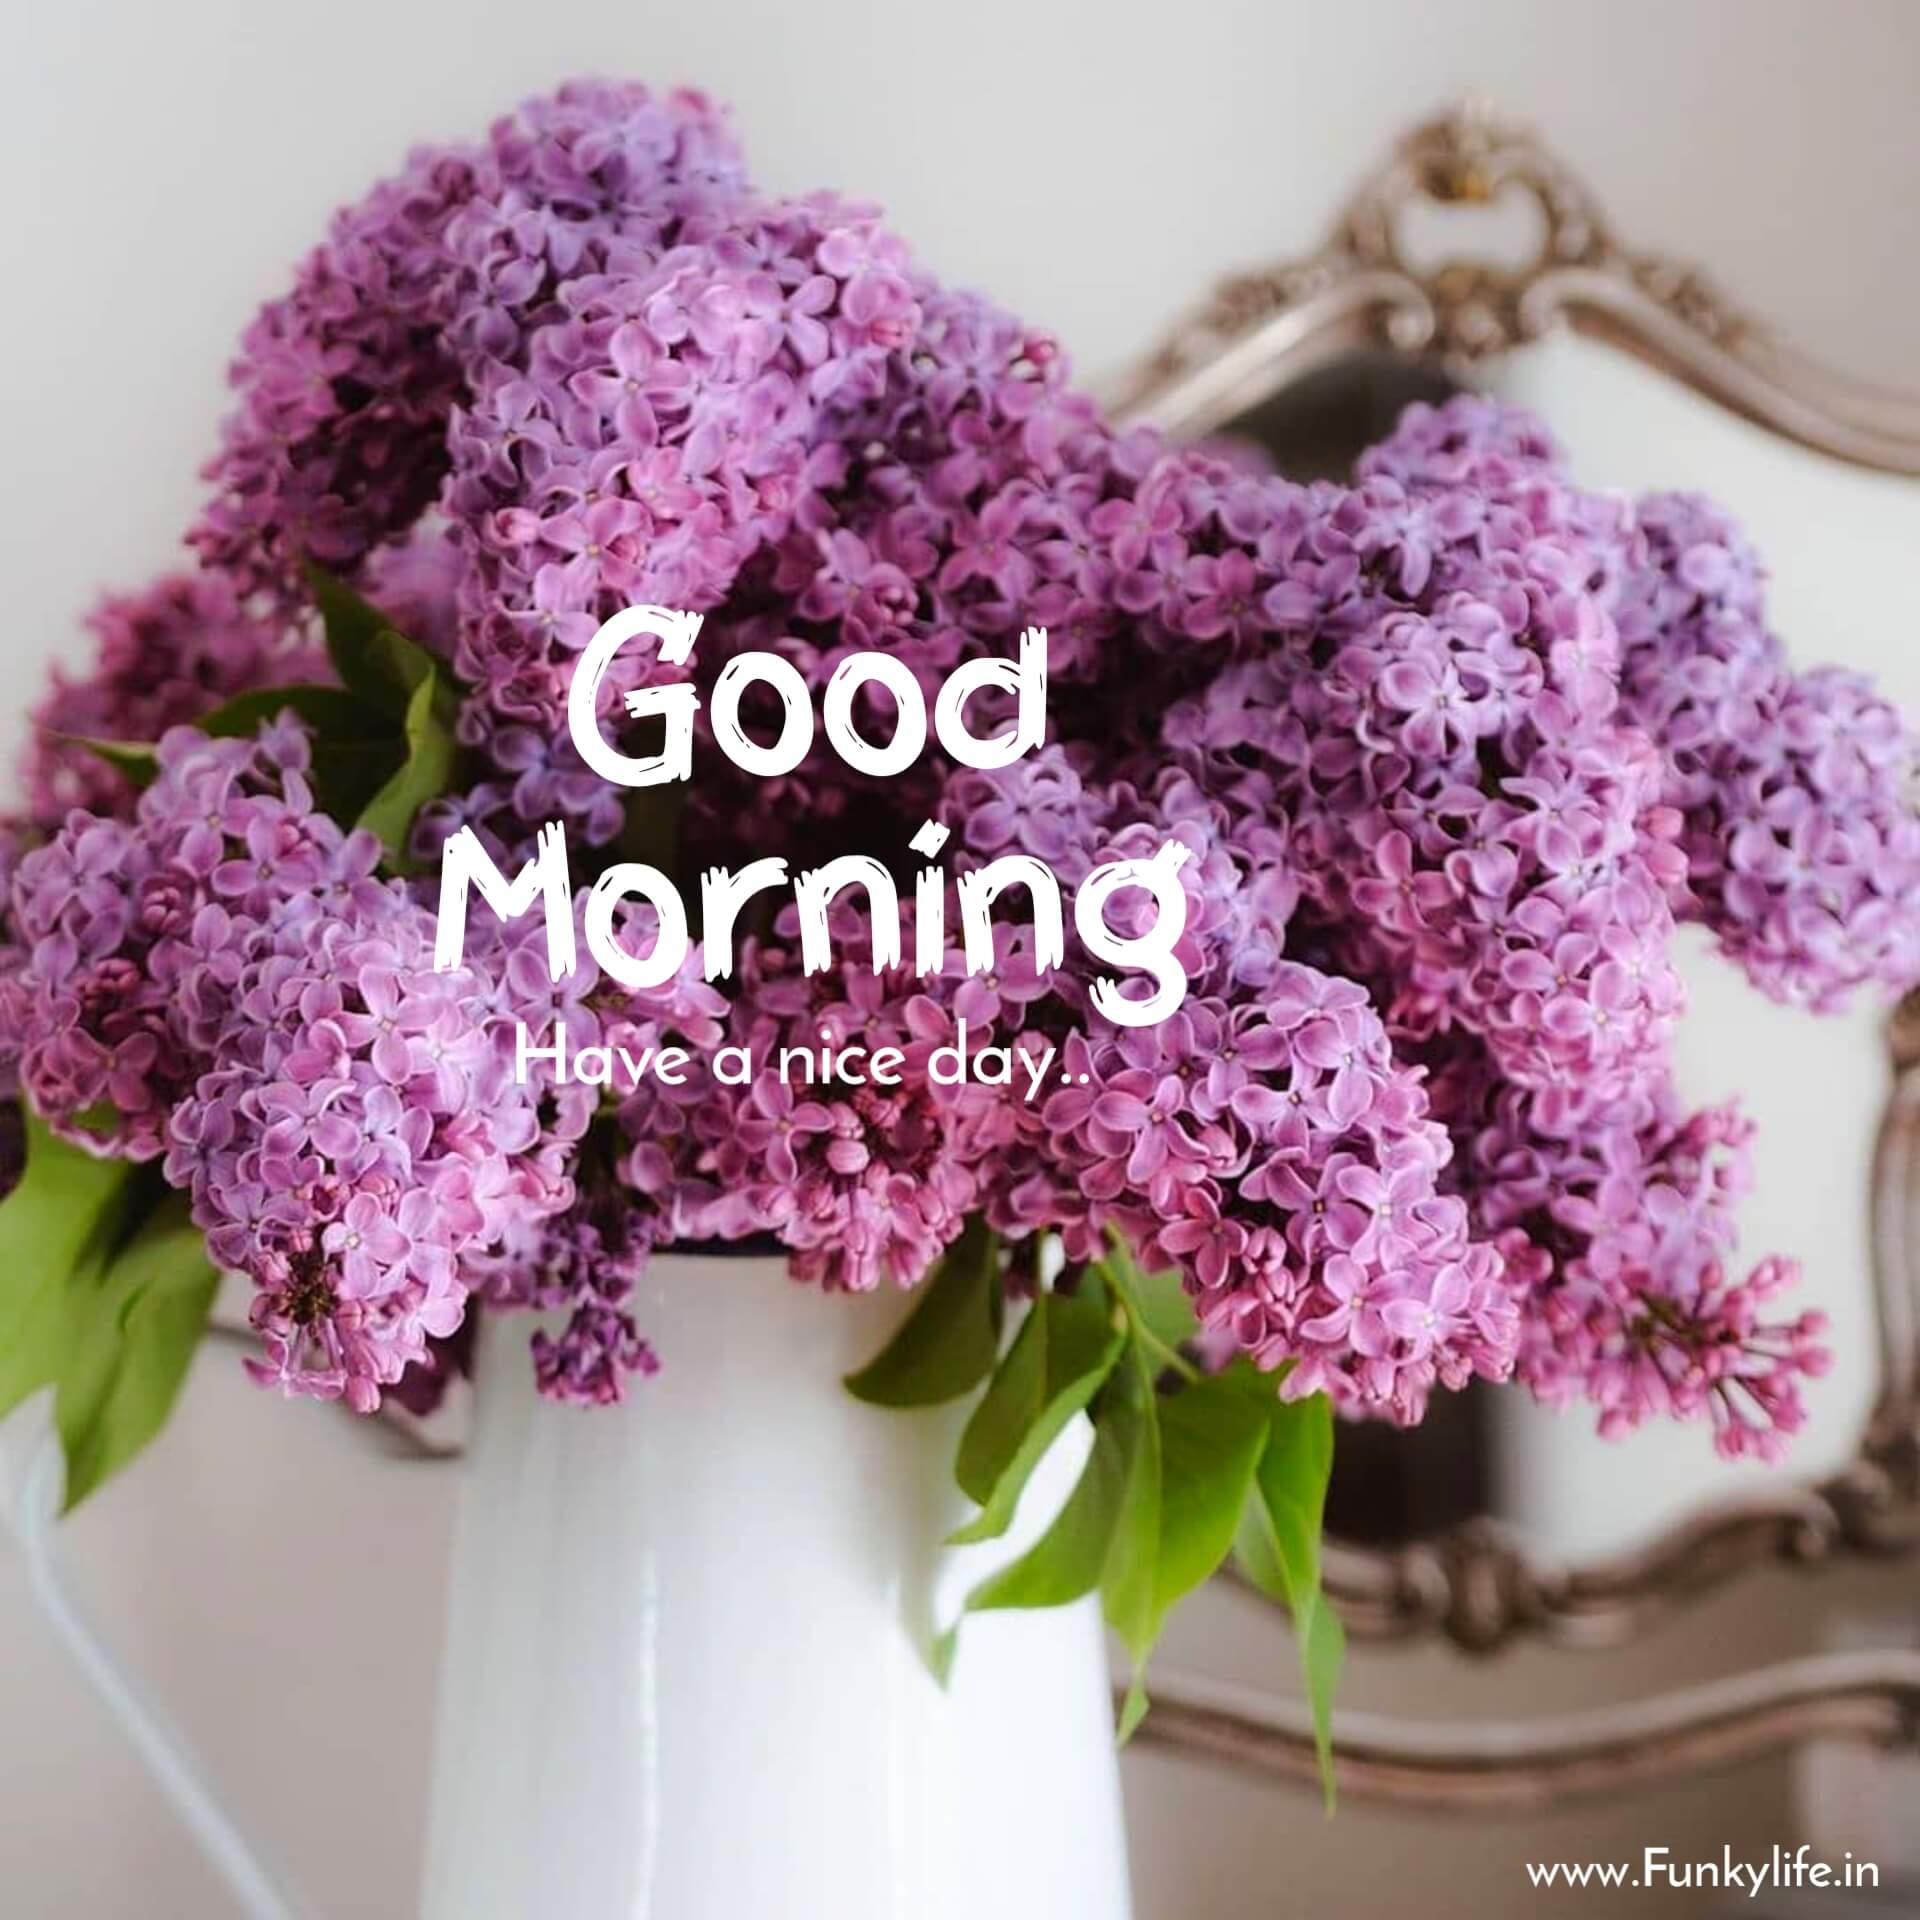 A beautiful flower for morning